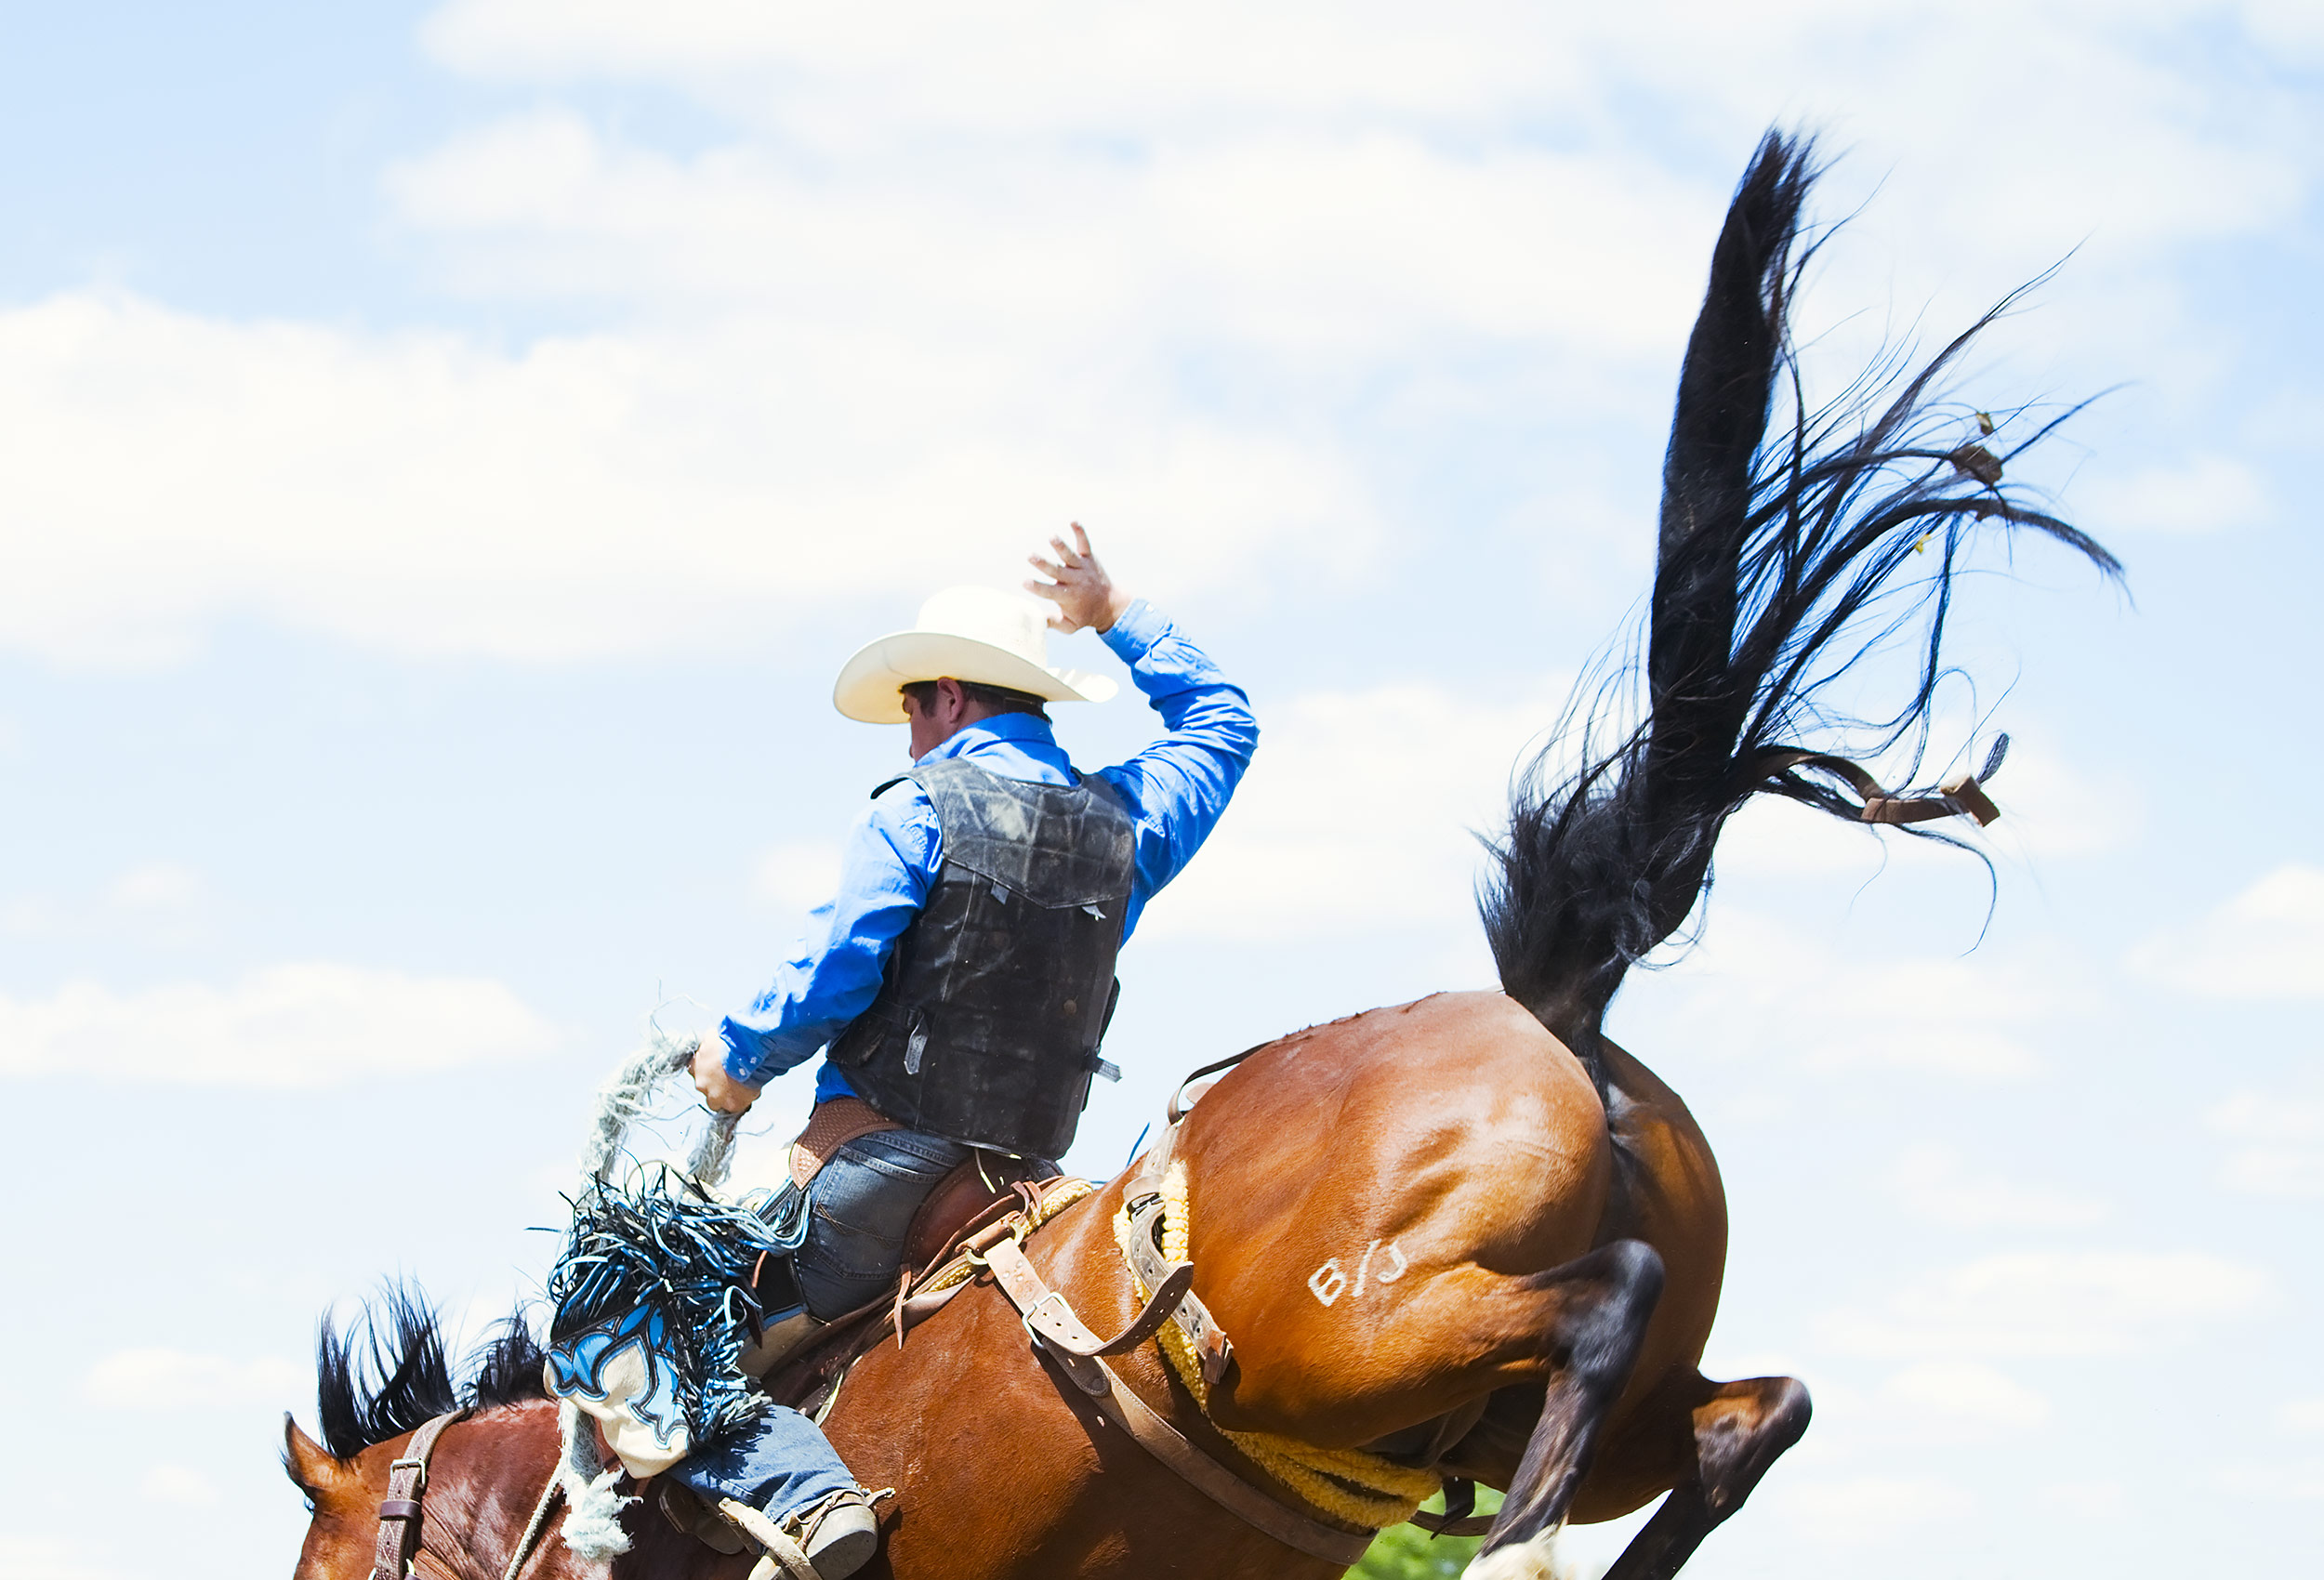 Cowboy riding a bucking bronco at the Bucking Horse Sale Rodeo in Miles City, Montana